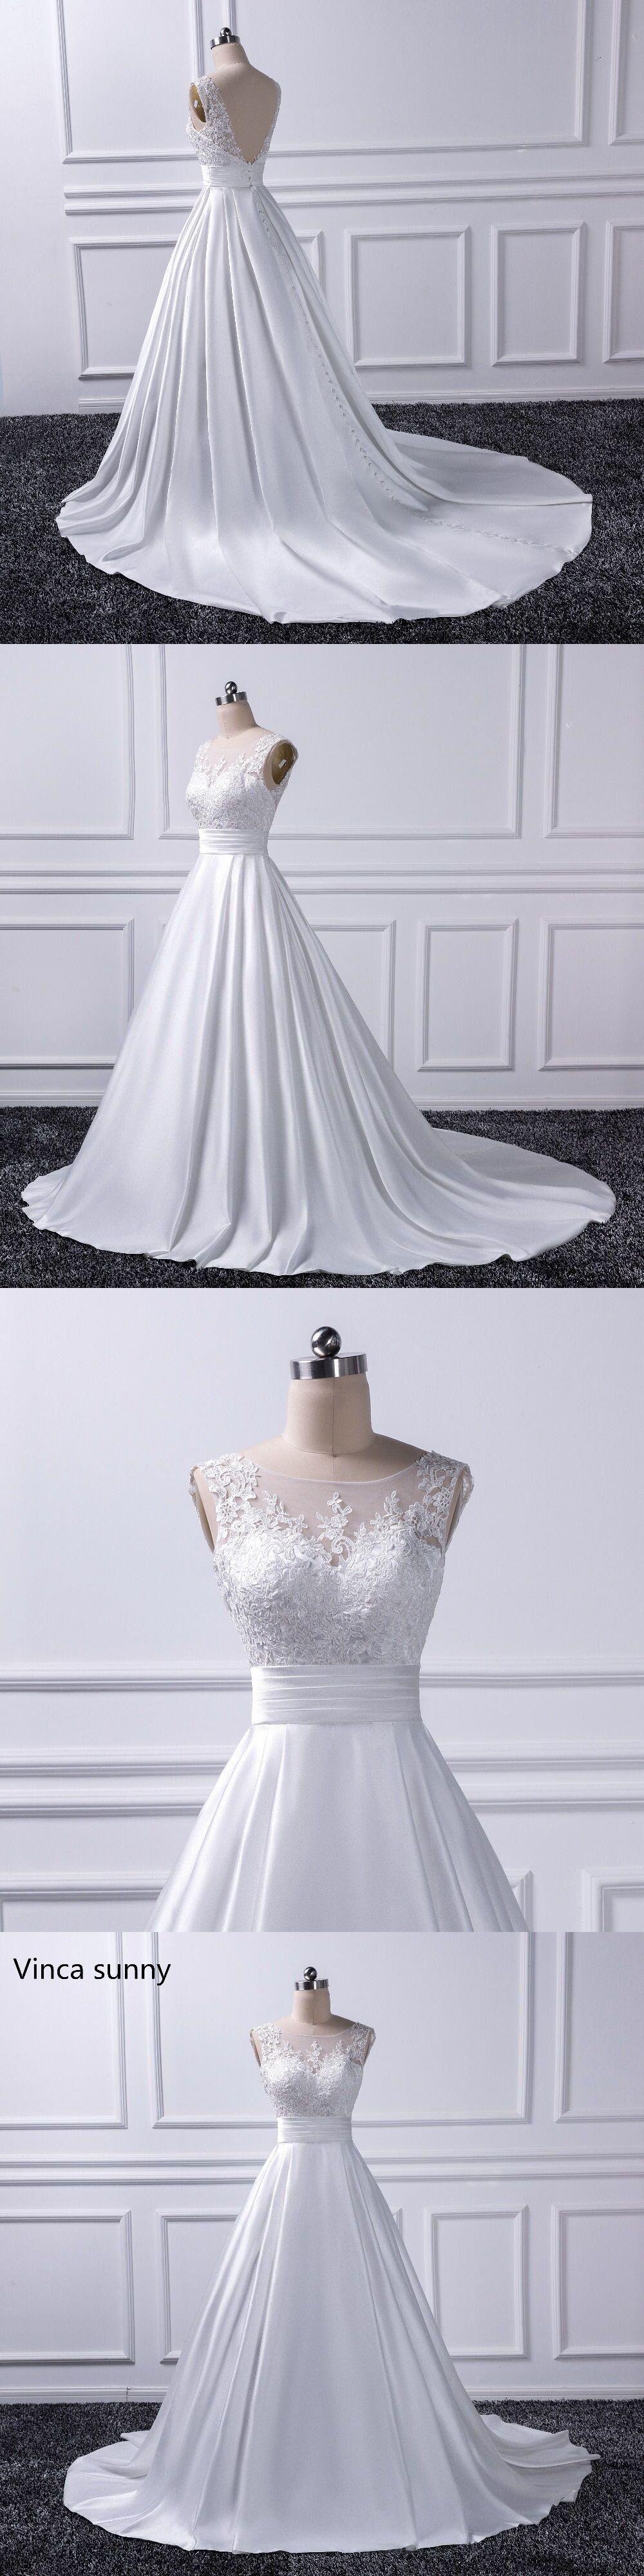 Satin backless wedding dress  Sexy Backless Wedding Dresses  Chapel Train Bridal Gowns Ivory